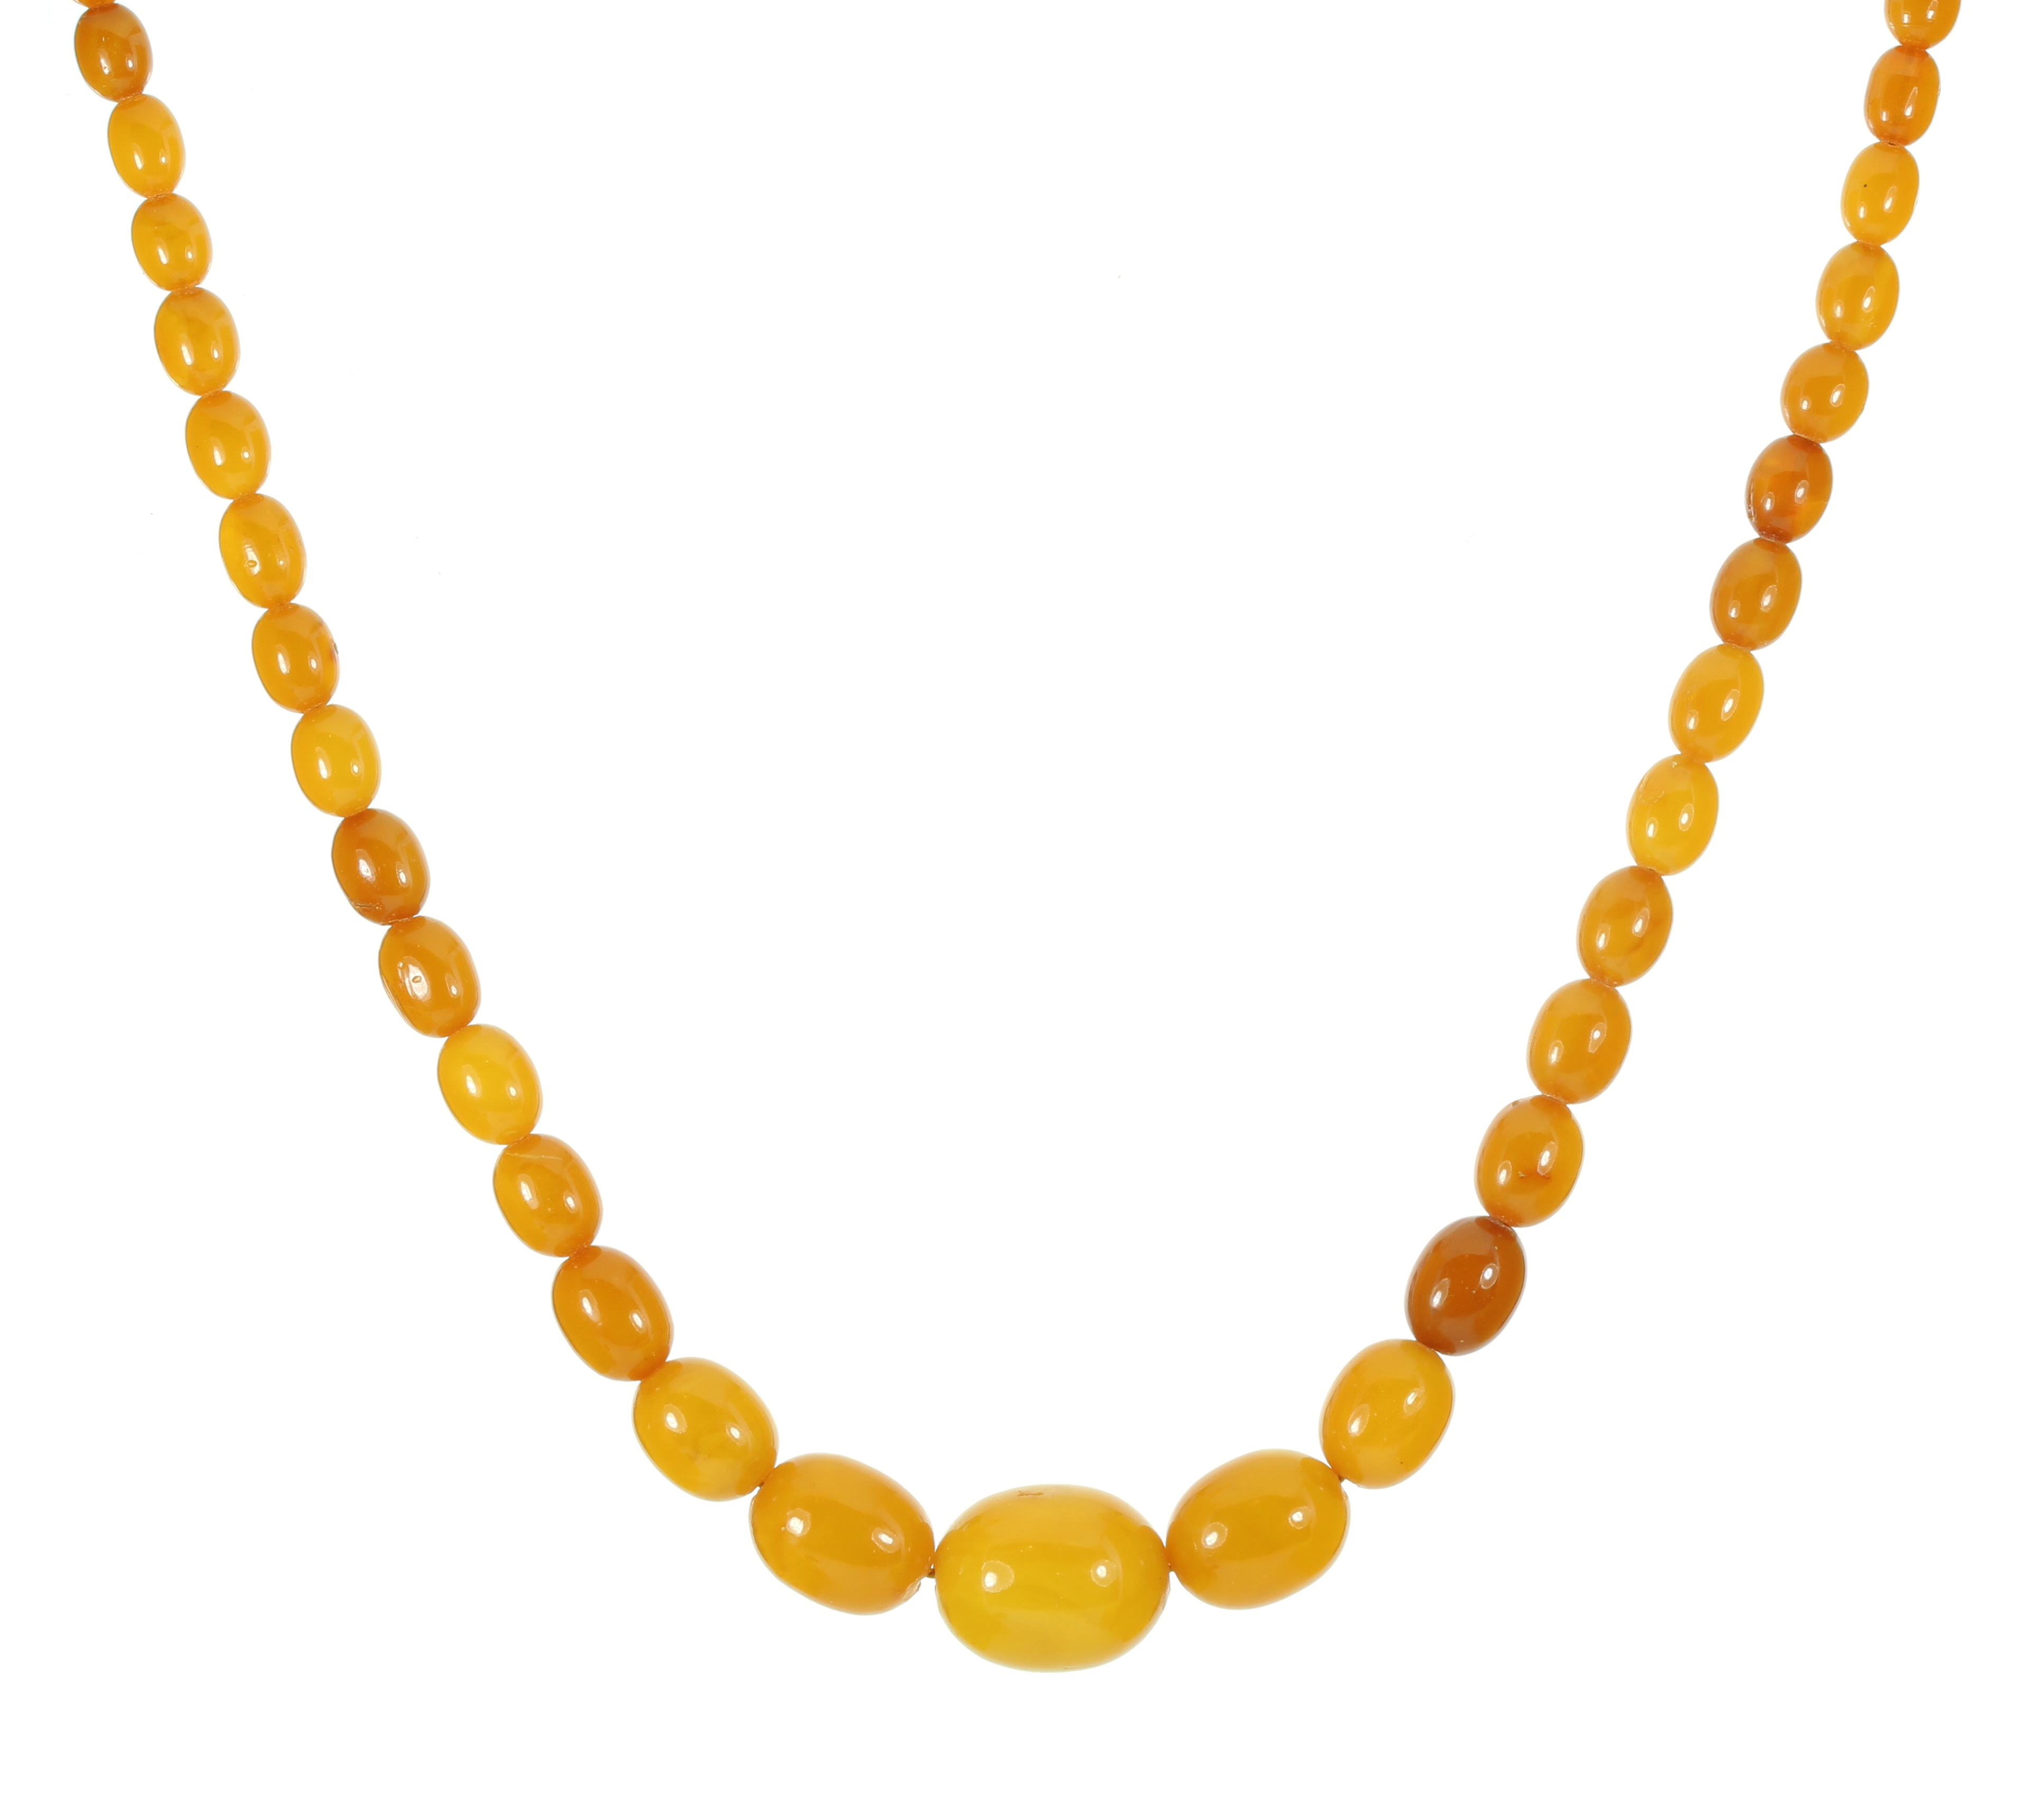 Los 3 - A NATURAL AMBER BEAD NECKLACE comprising a single row of fifty-seven graduated polished oval beads